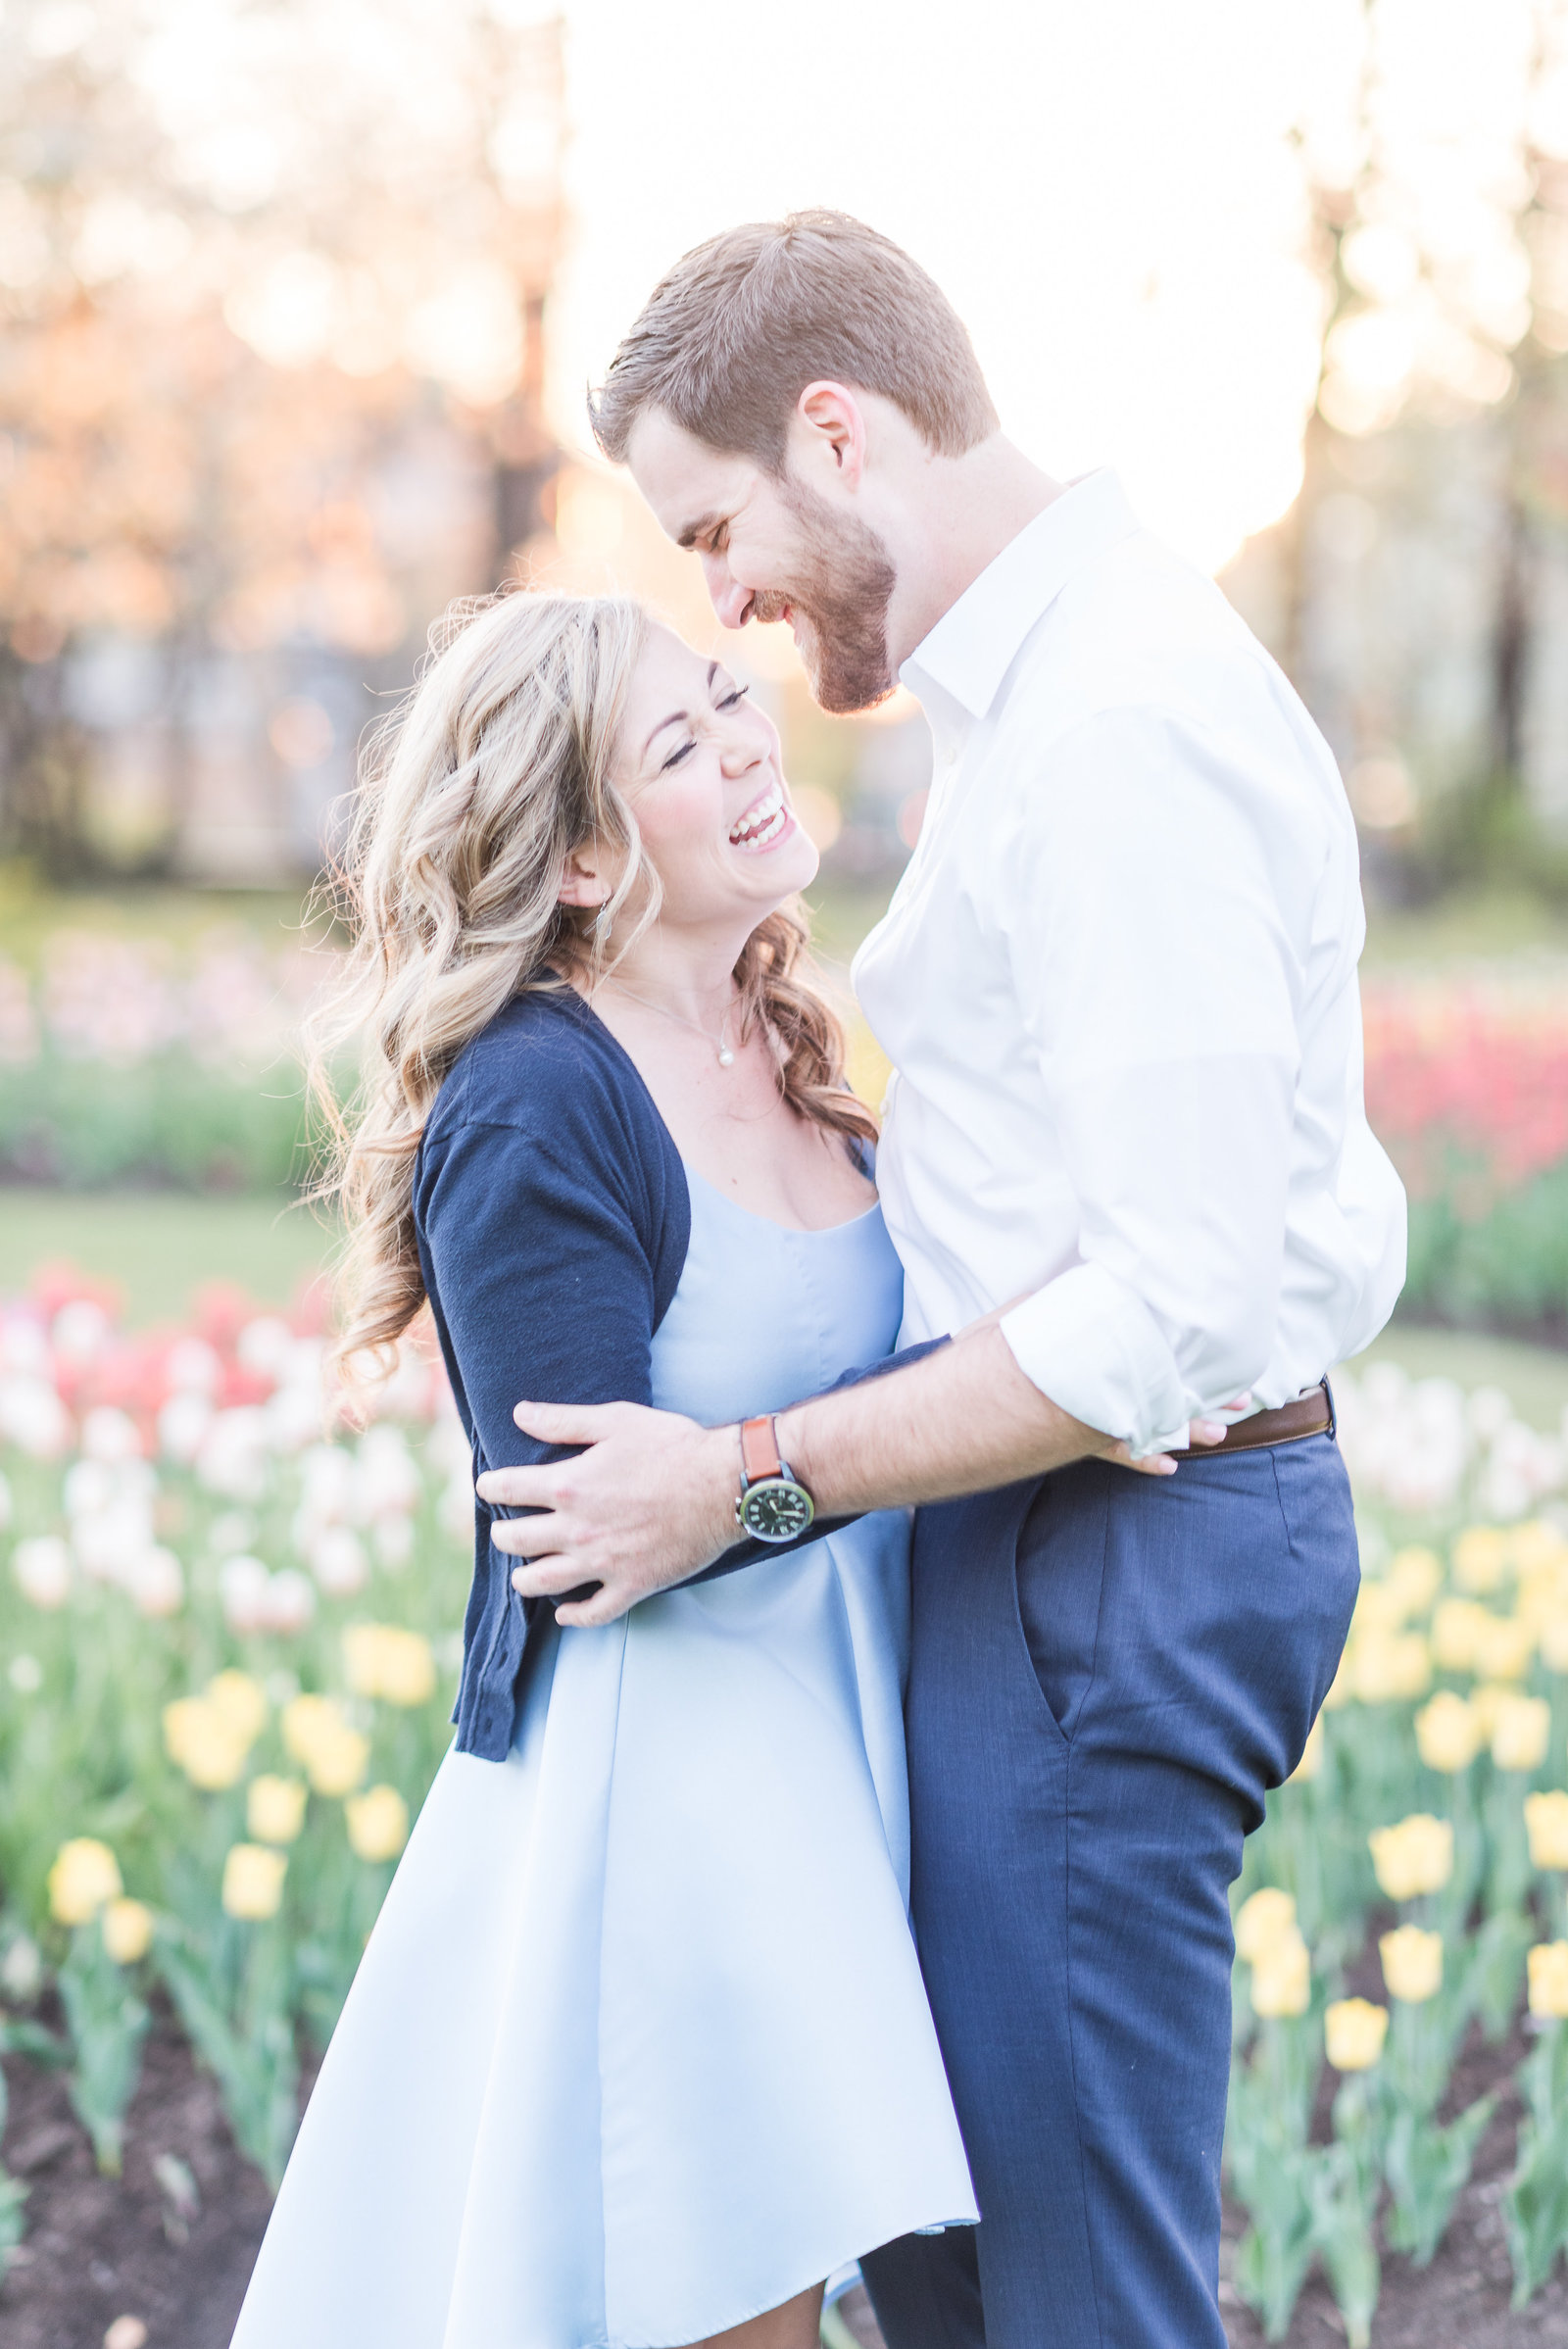 Spring-Engagement-Photos-Ottawa-044943